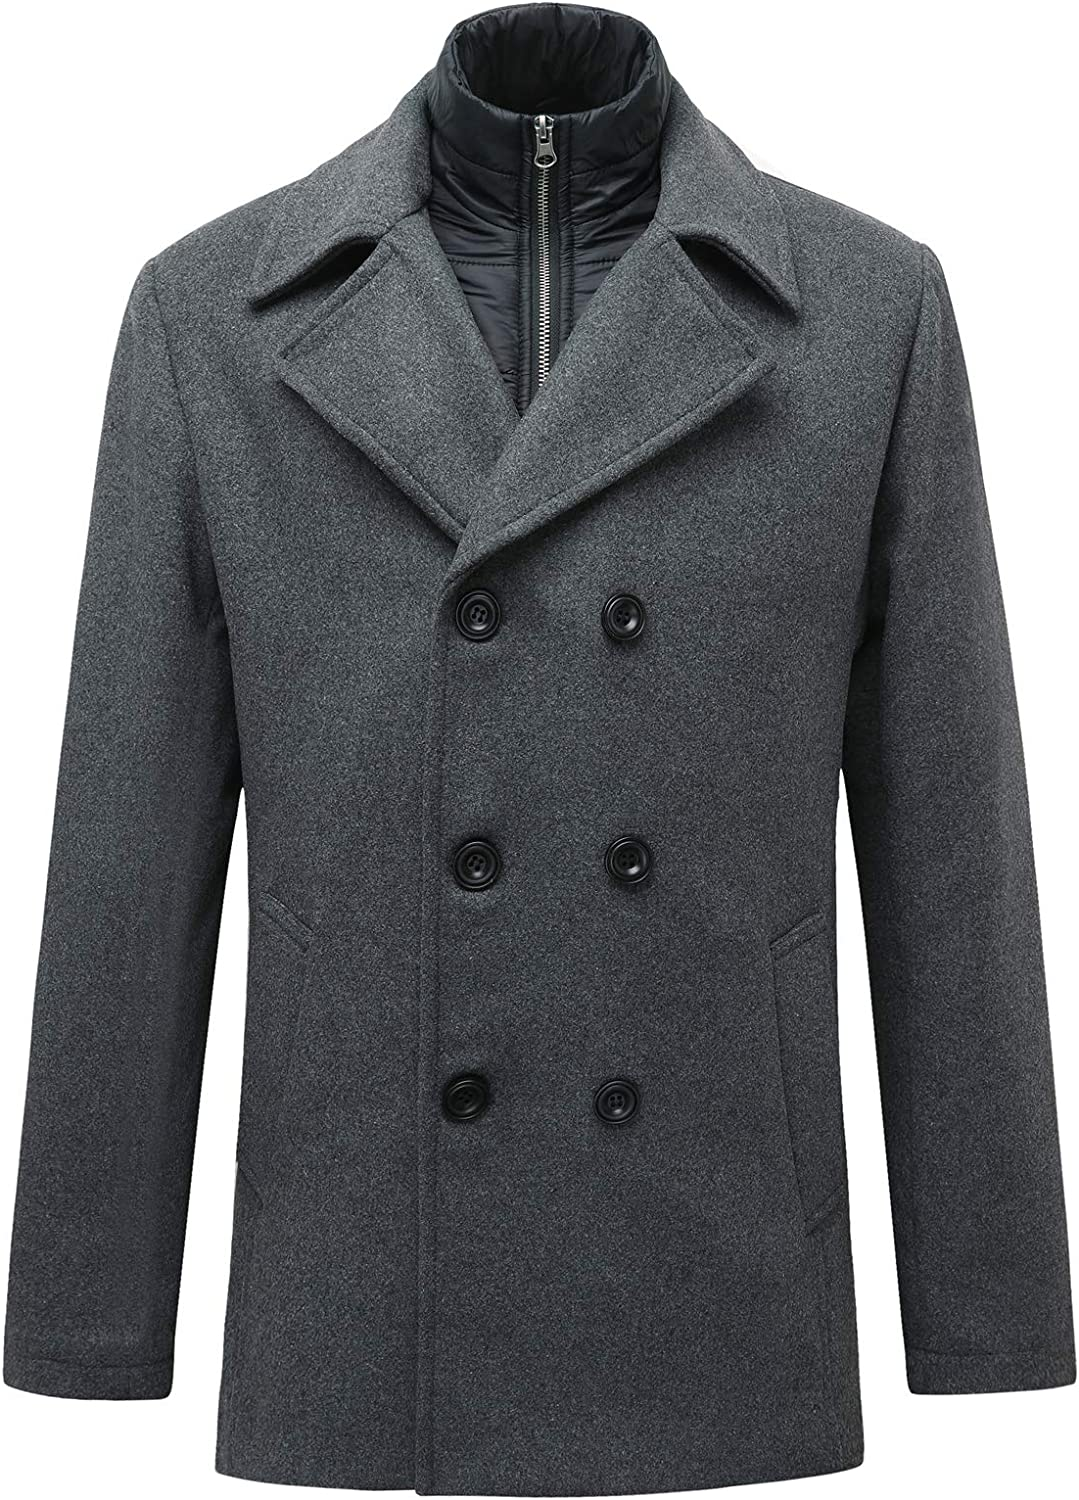 Men's Double Breasted Wool Blend Pea Coat,Classic Notched Collar with Removable Bib